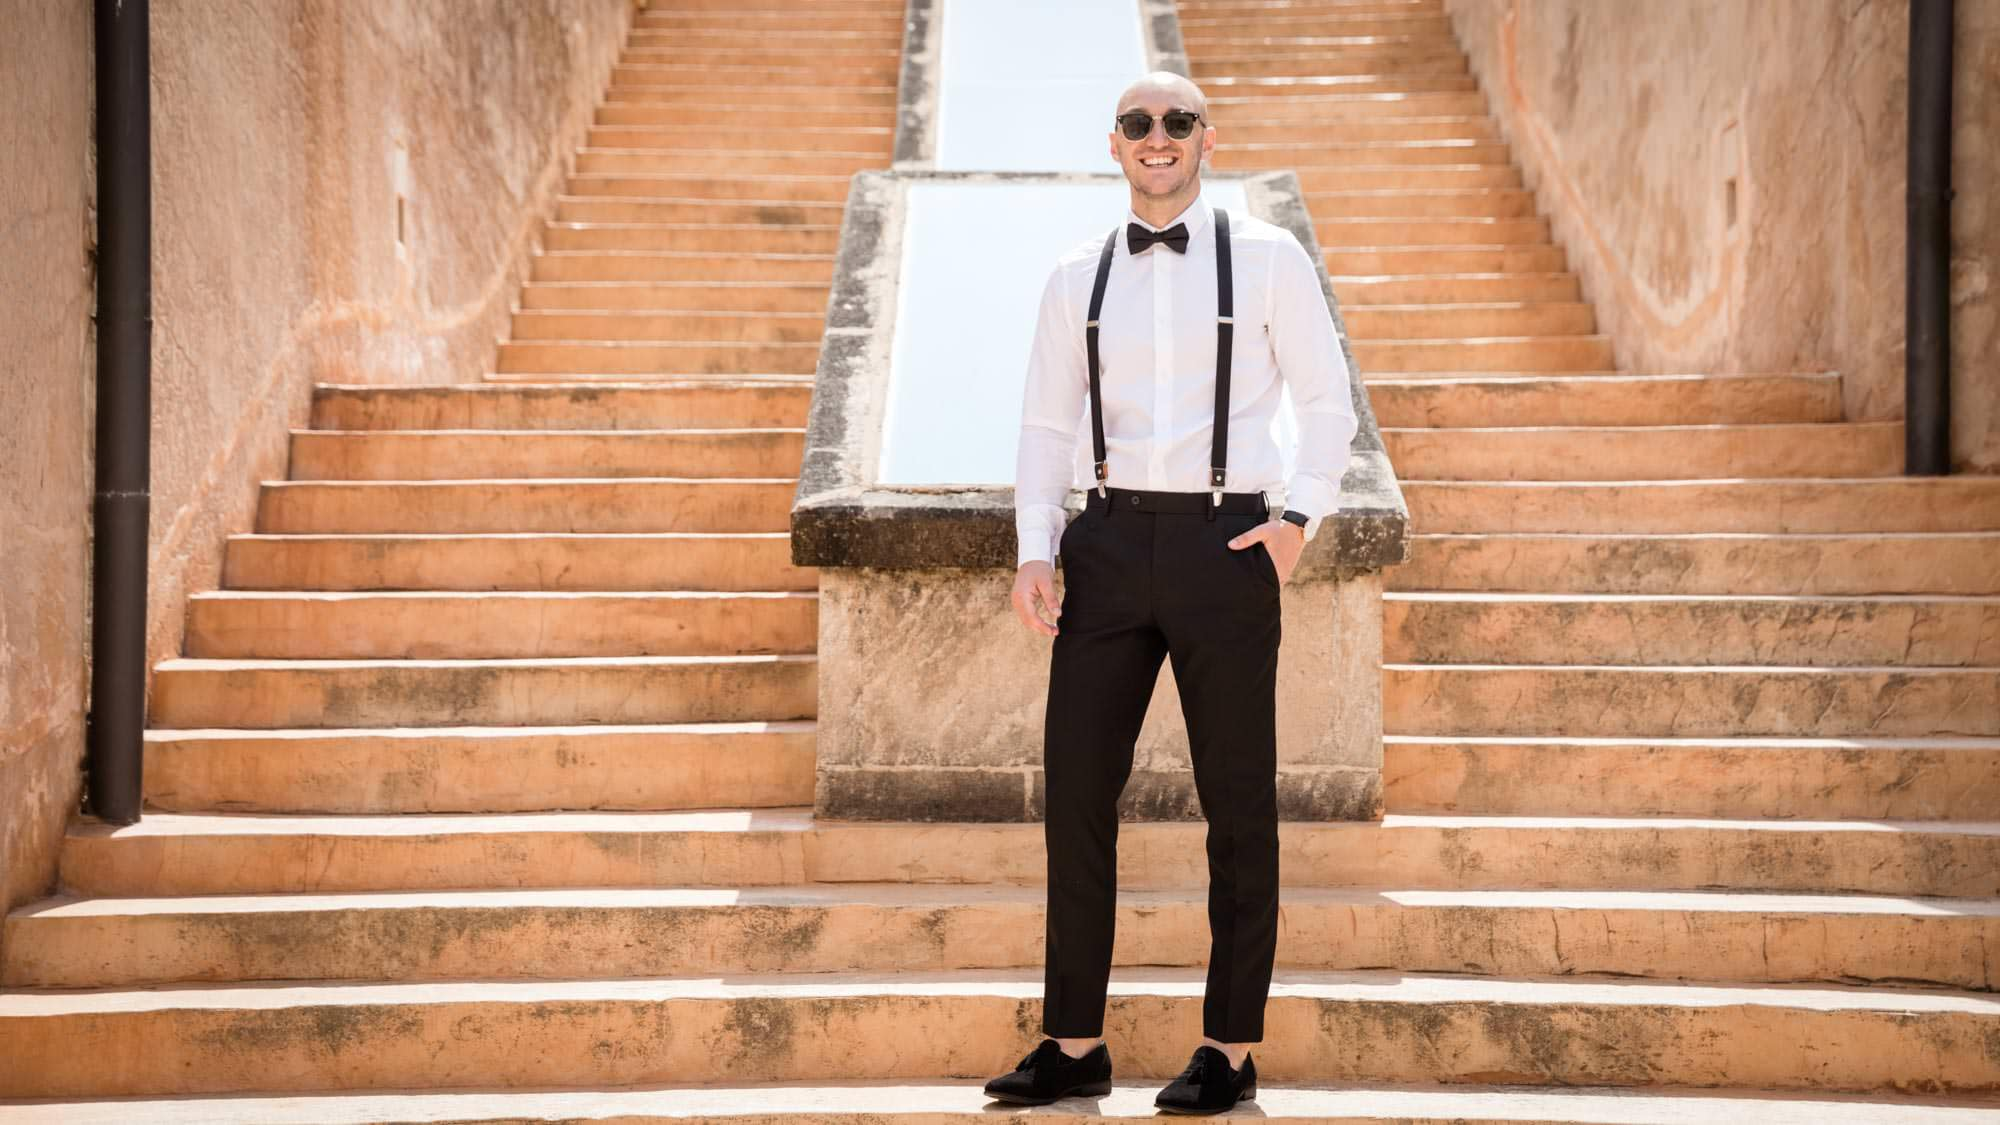 The groom poses on the steps before his wedding